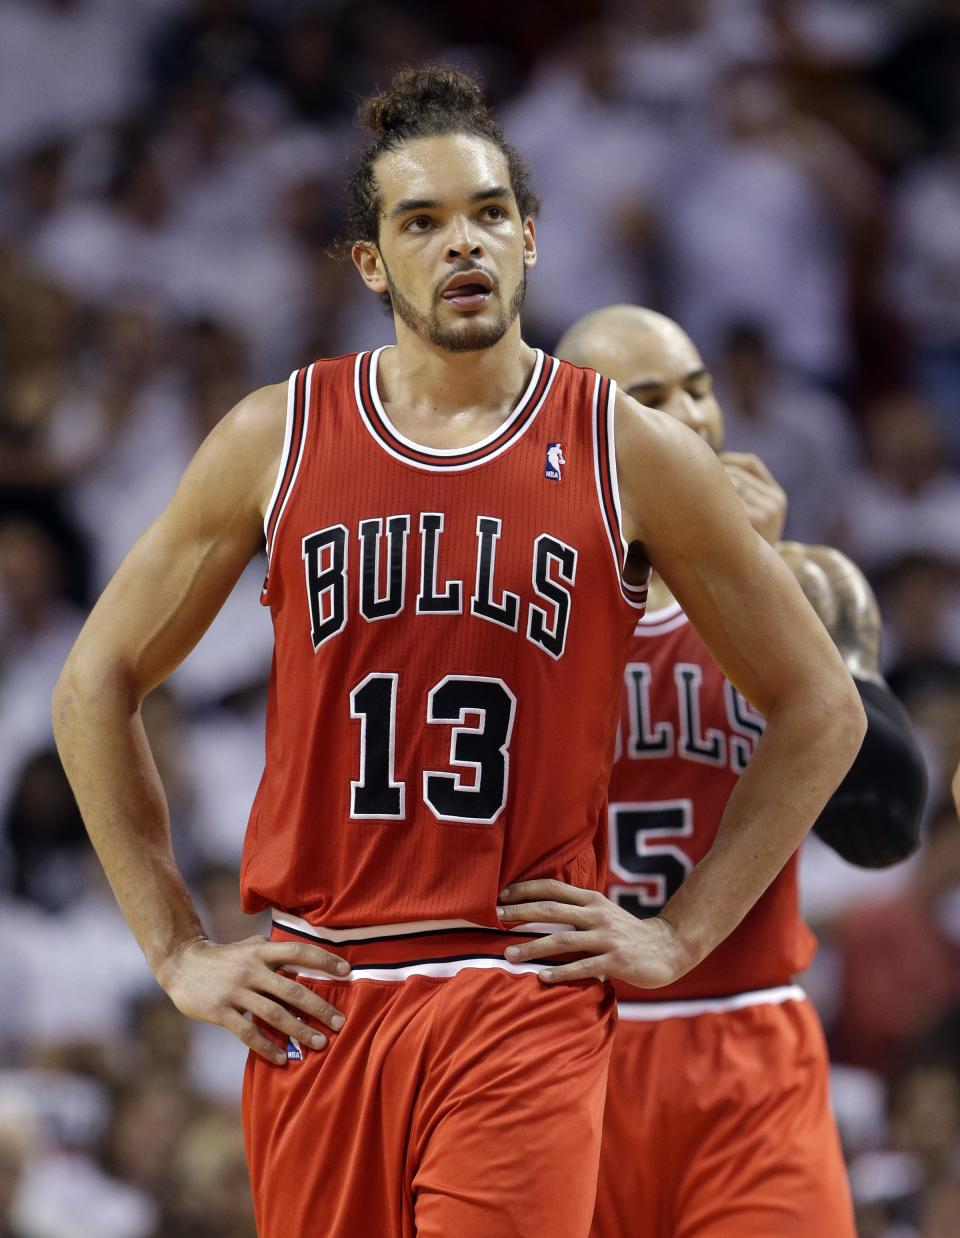 Chicago Bulls' Joakim Noah (13) walks on the court during the first half of Game 5 of the Bulls' NBA basketball Eastern Conference semifinal against the Miami Heat, Wednesday, May 15, 2013, in Miami. The Heat defeated the Bulls 94-91, and won the series. (AP Photo/Wilfredo Lee)